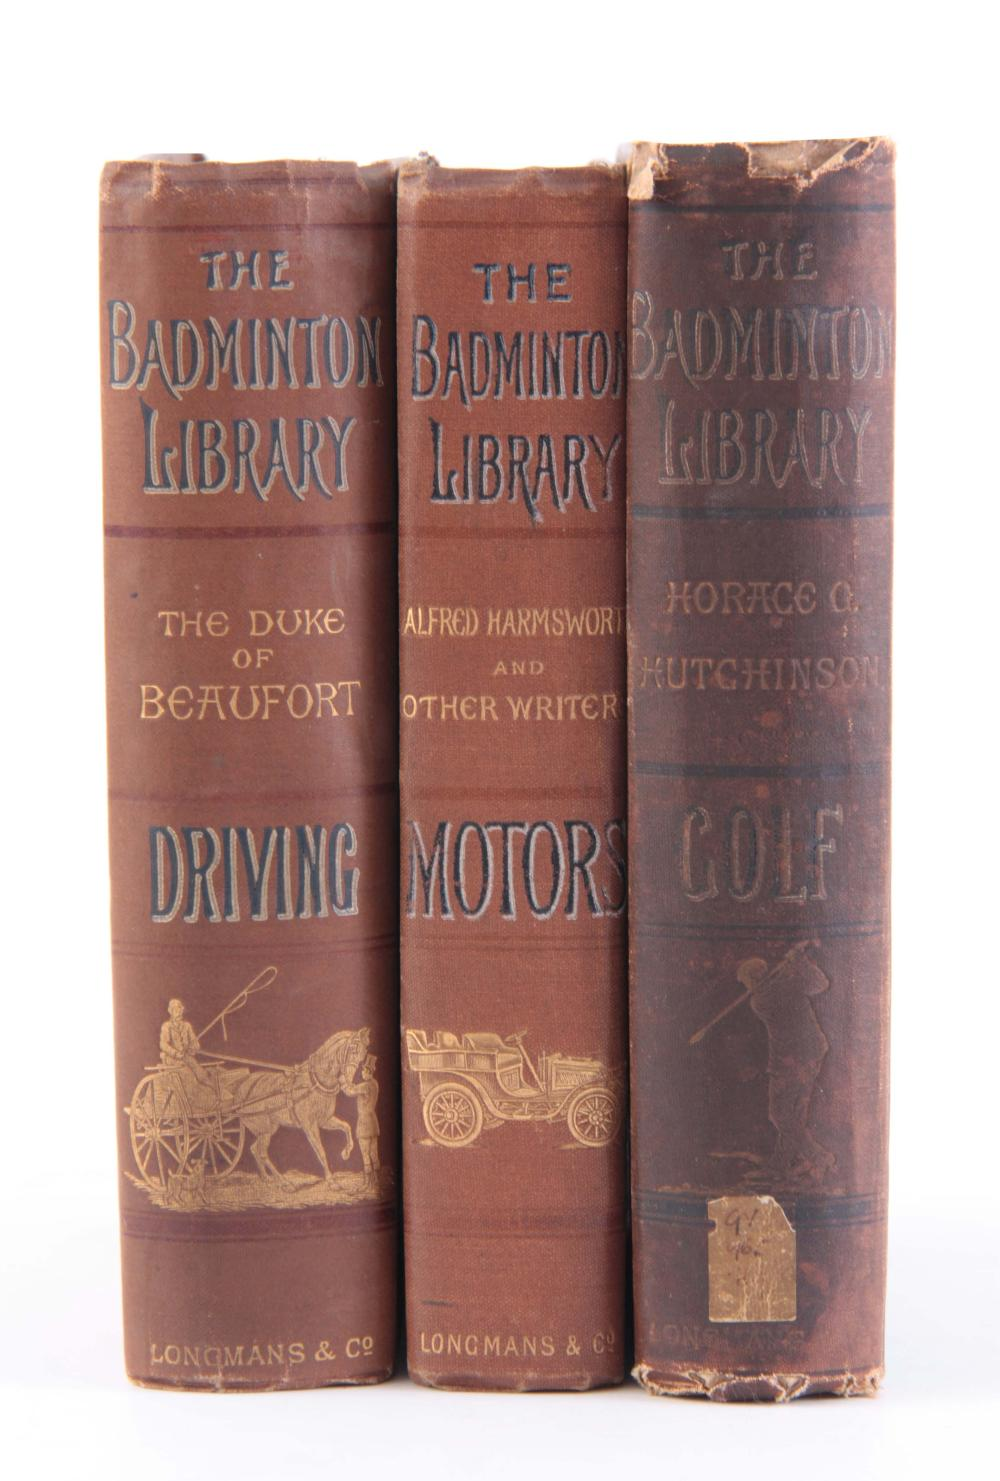 A SET OF 3 BOOKS of THE BADMINTON LIBRARY covering